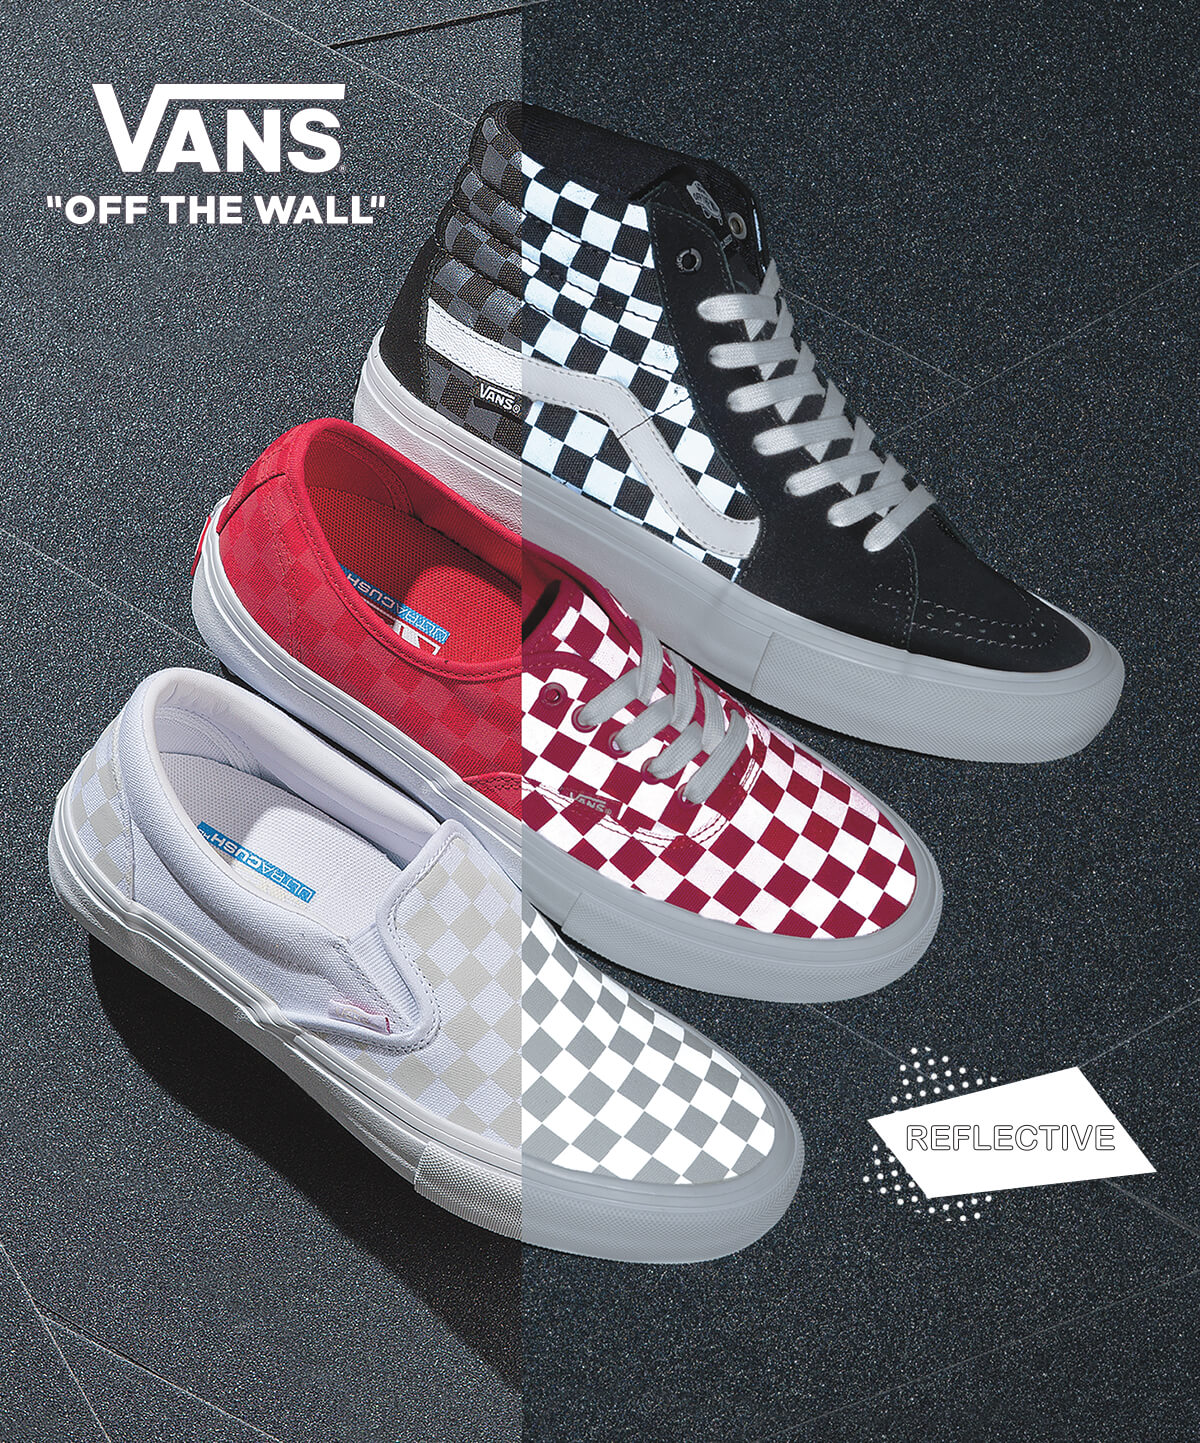 NEW FOOTWEAR ARRIVALS FEATURING NEW REFLECTIVE CHECKERS & MORE - SHOP NEW VANS NOW